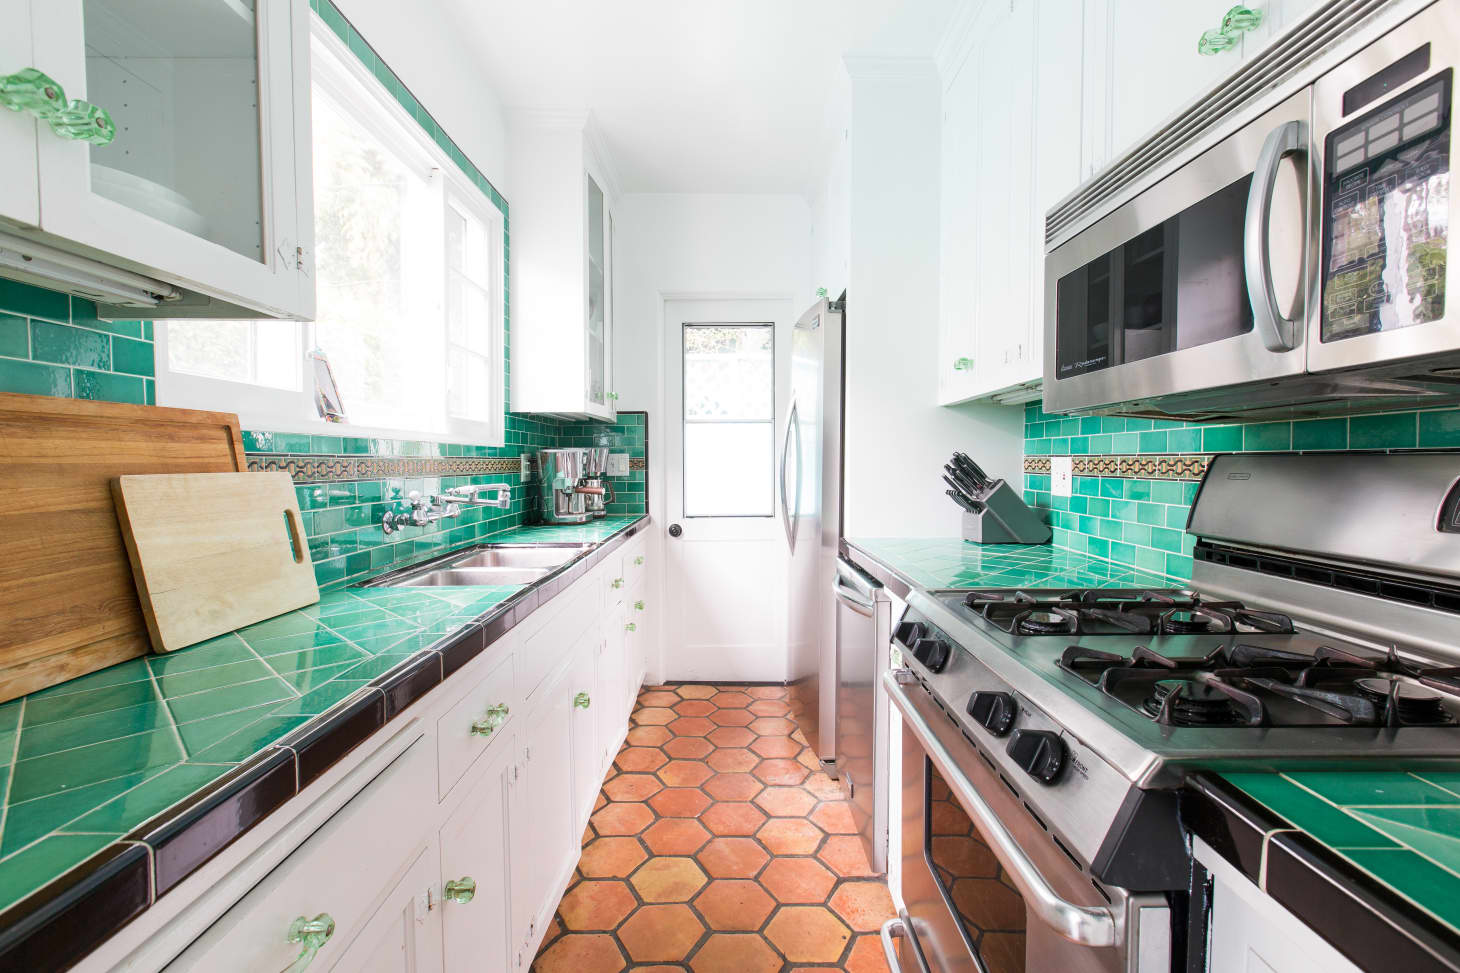 The Best Kitchen Countertop Materials, According to Home ...